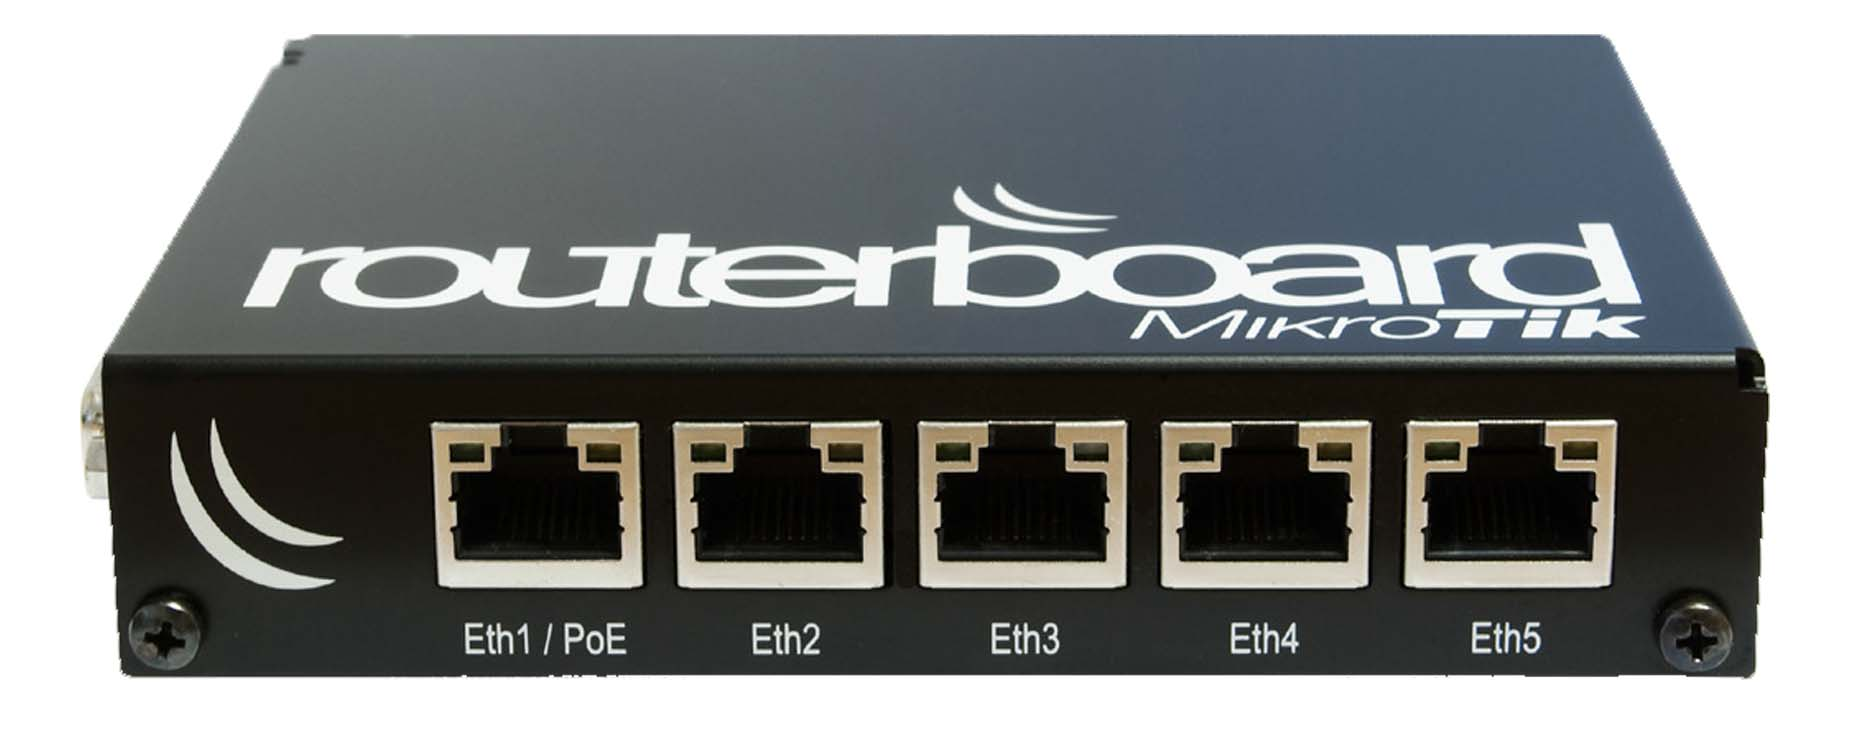 Version 18 OpenWrt Installation on the Mikrotik RB493G – Alduras